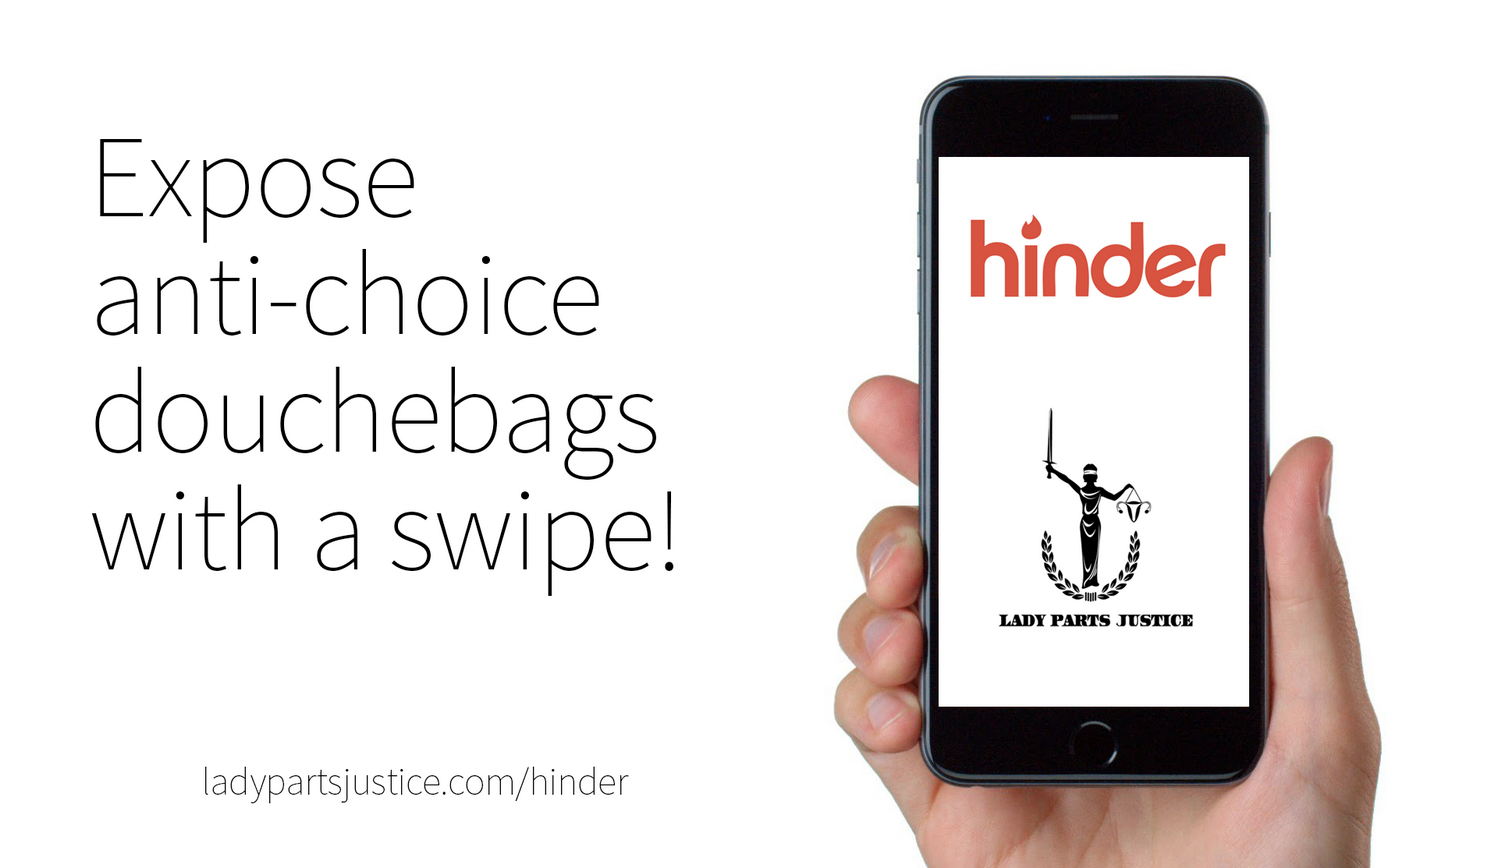 Hinder dating app